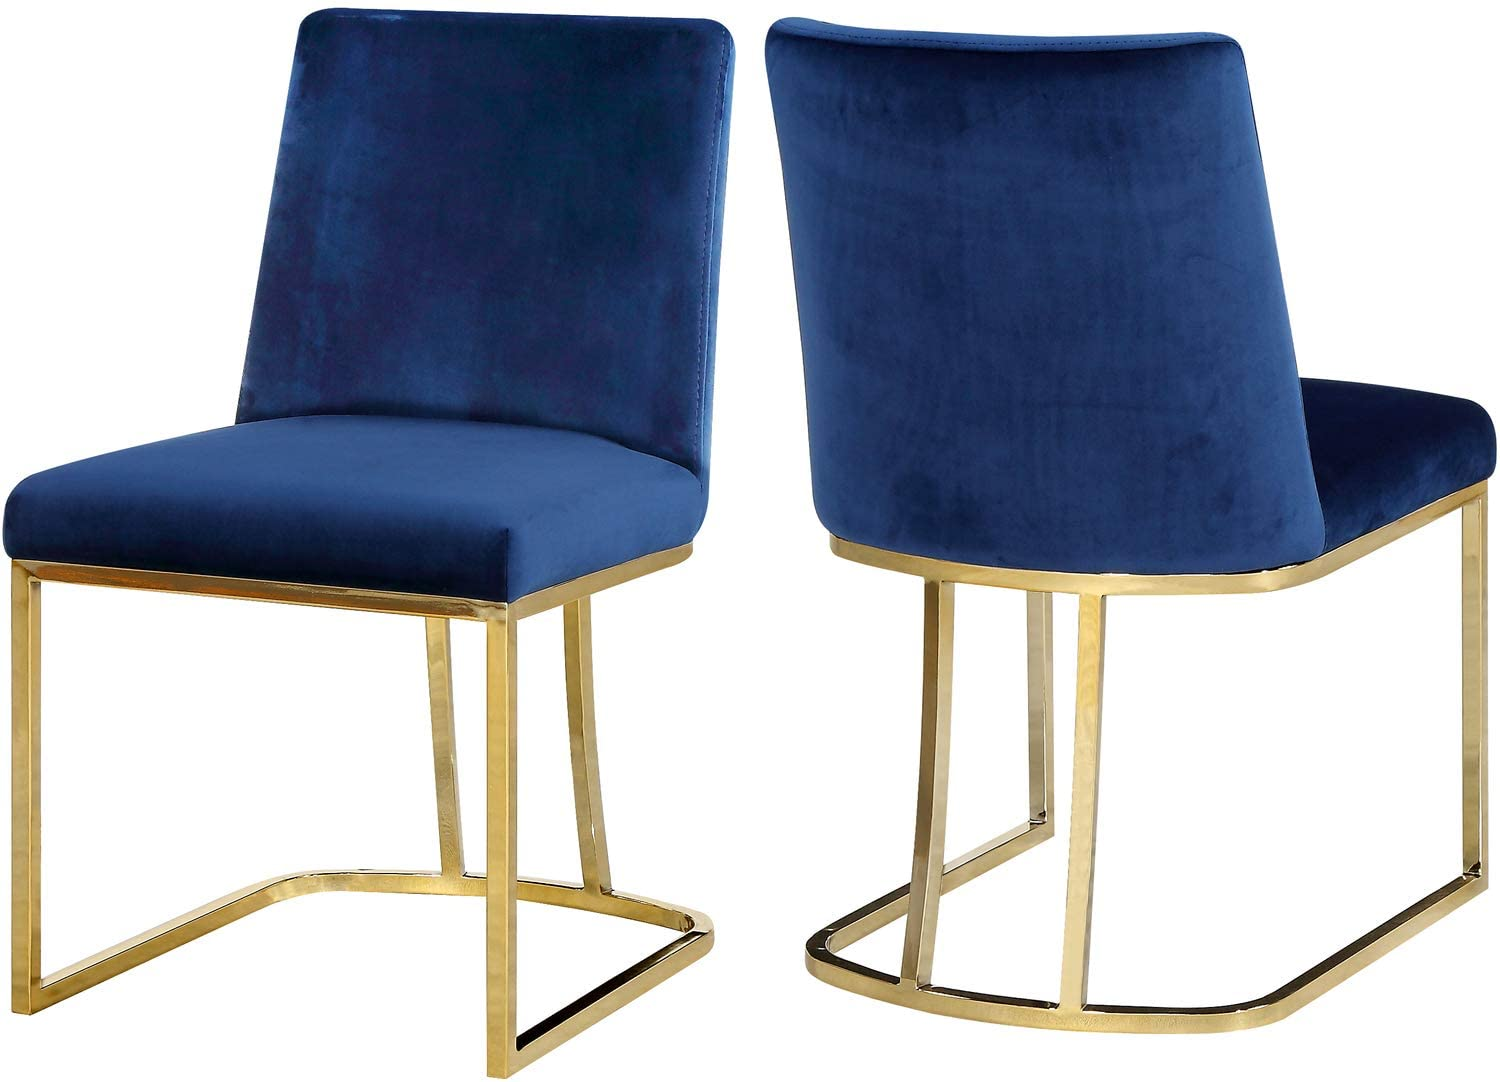 Meridian Furniture Heidi Collection Modern | Contemporary Velvet Upholstered Dining Chair with Polished Gold Metal Frame, Set of 2, 19